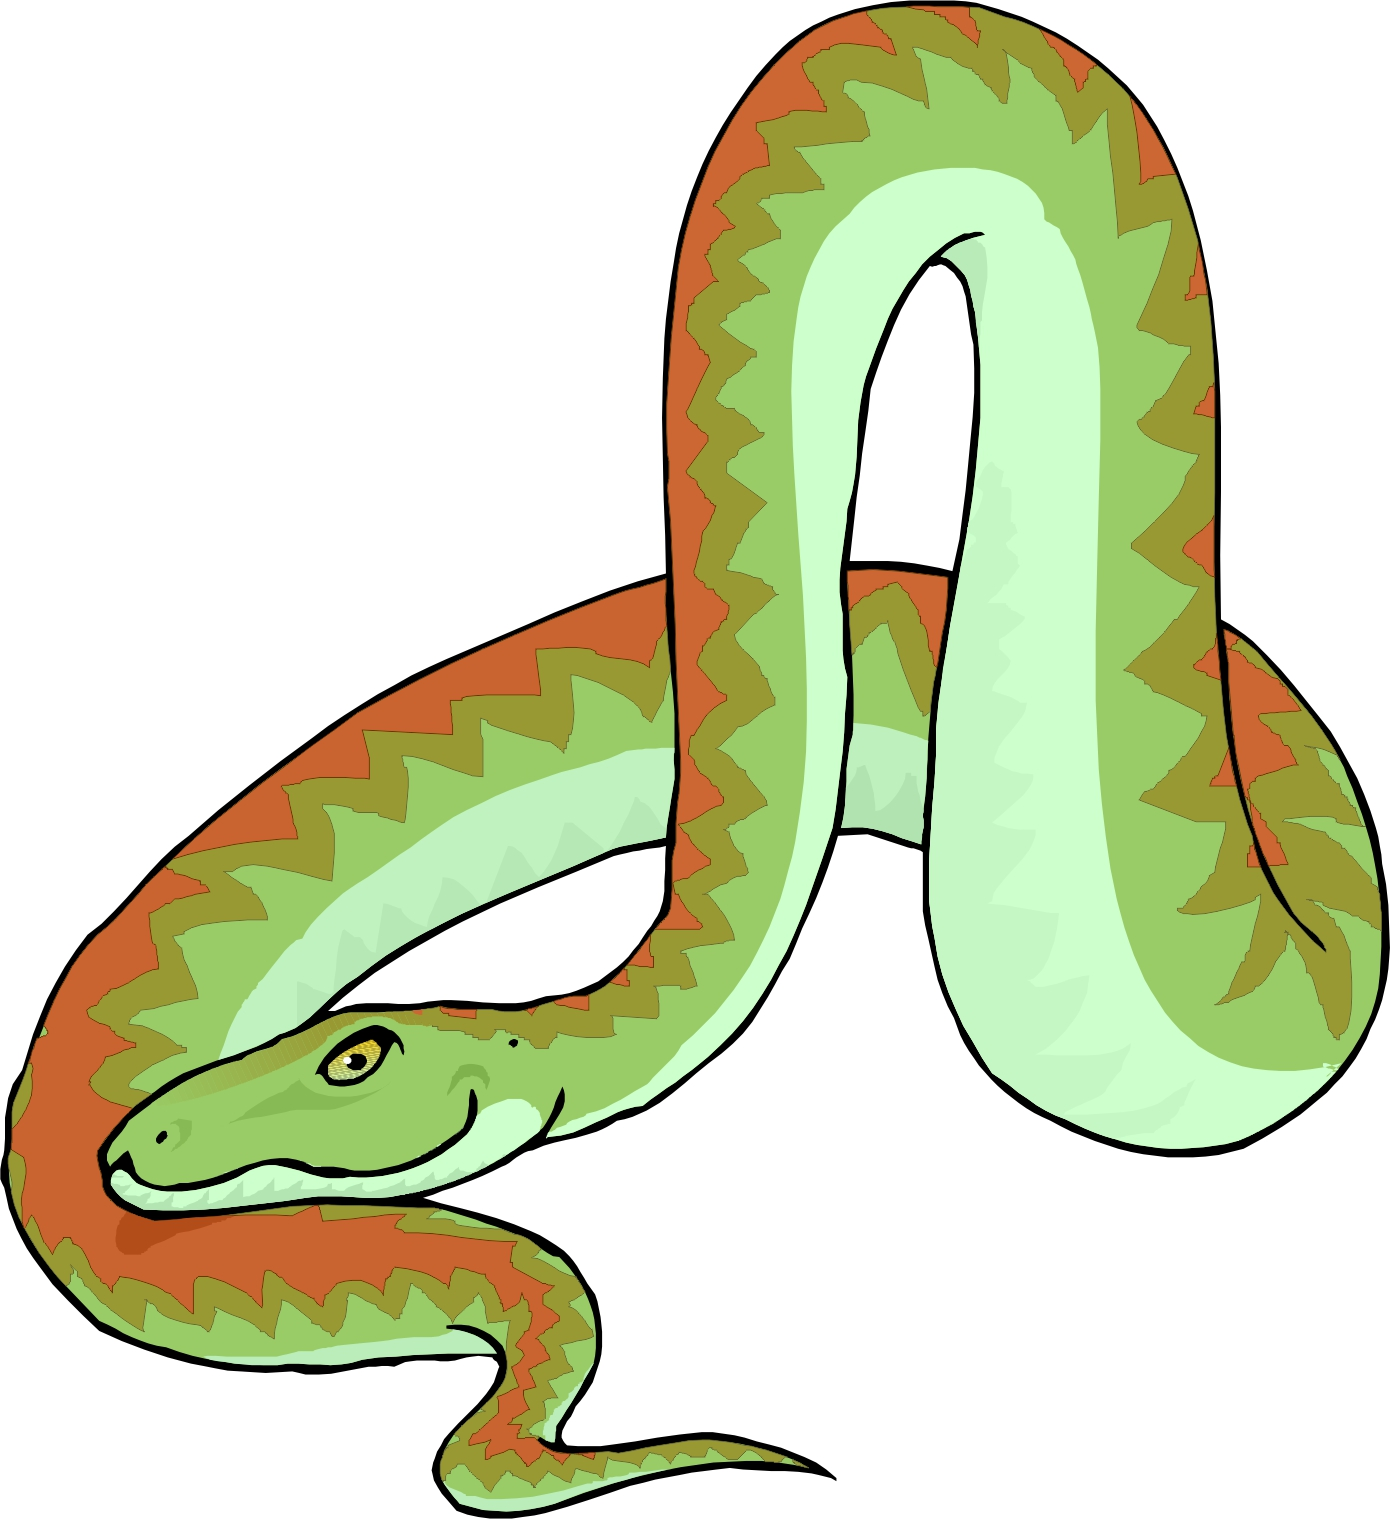 Pictures Of Cartoon Snakes - ClipArt Best